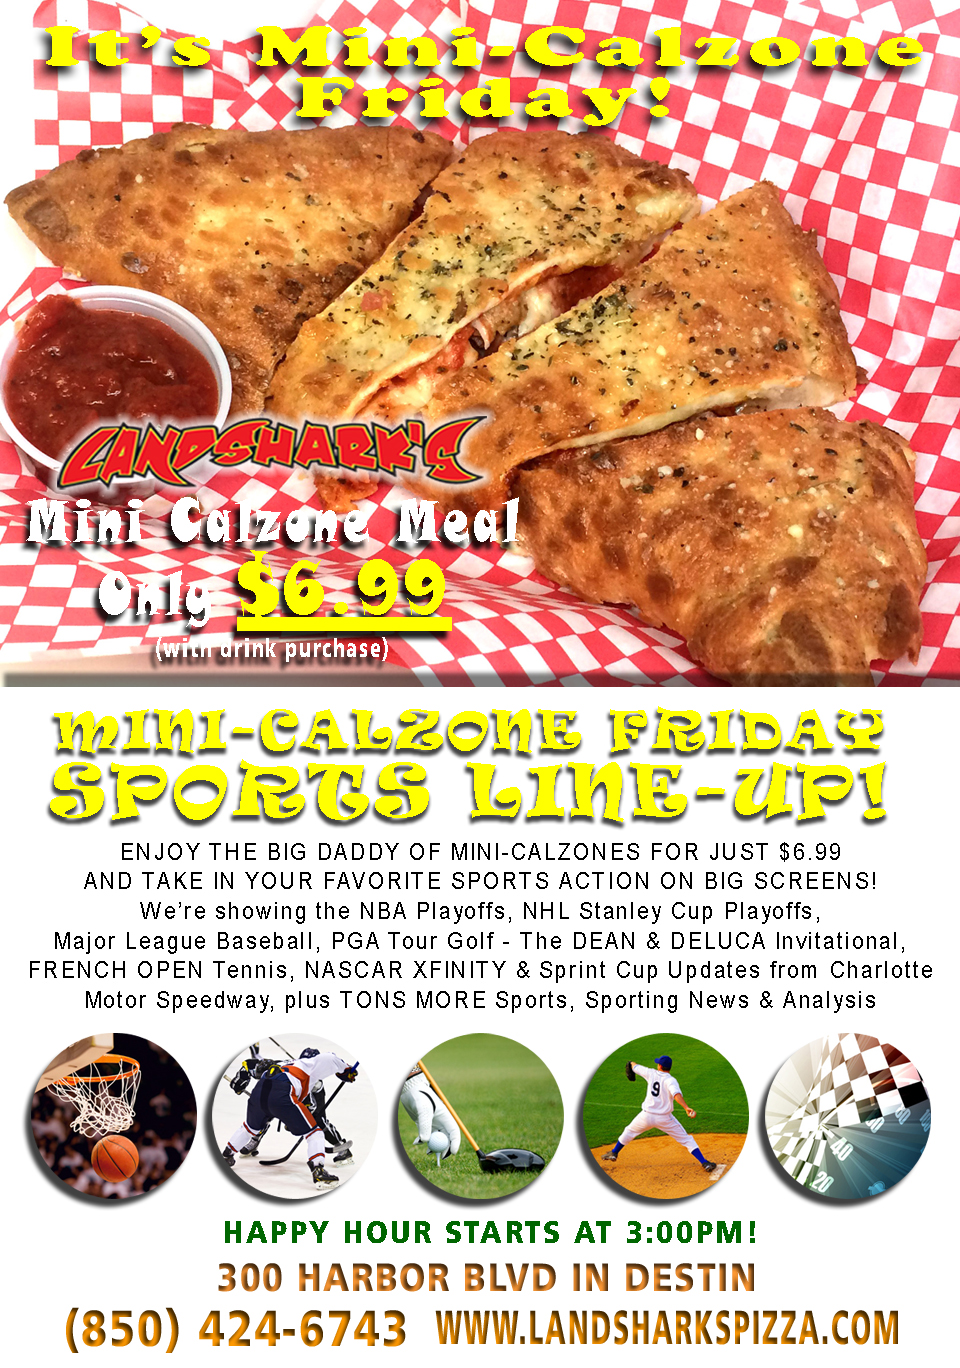 Best Calzones in Destin at Landsharks Pizza co Sports Drinks Fun